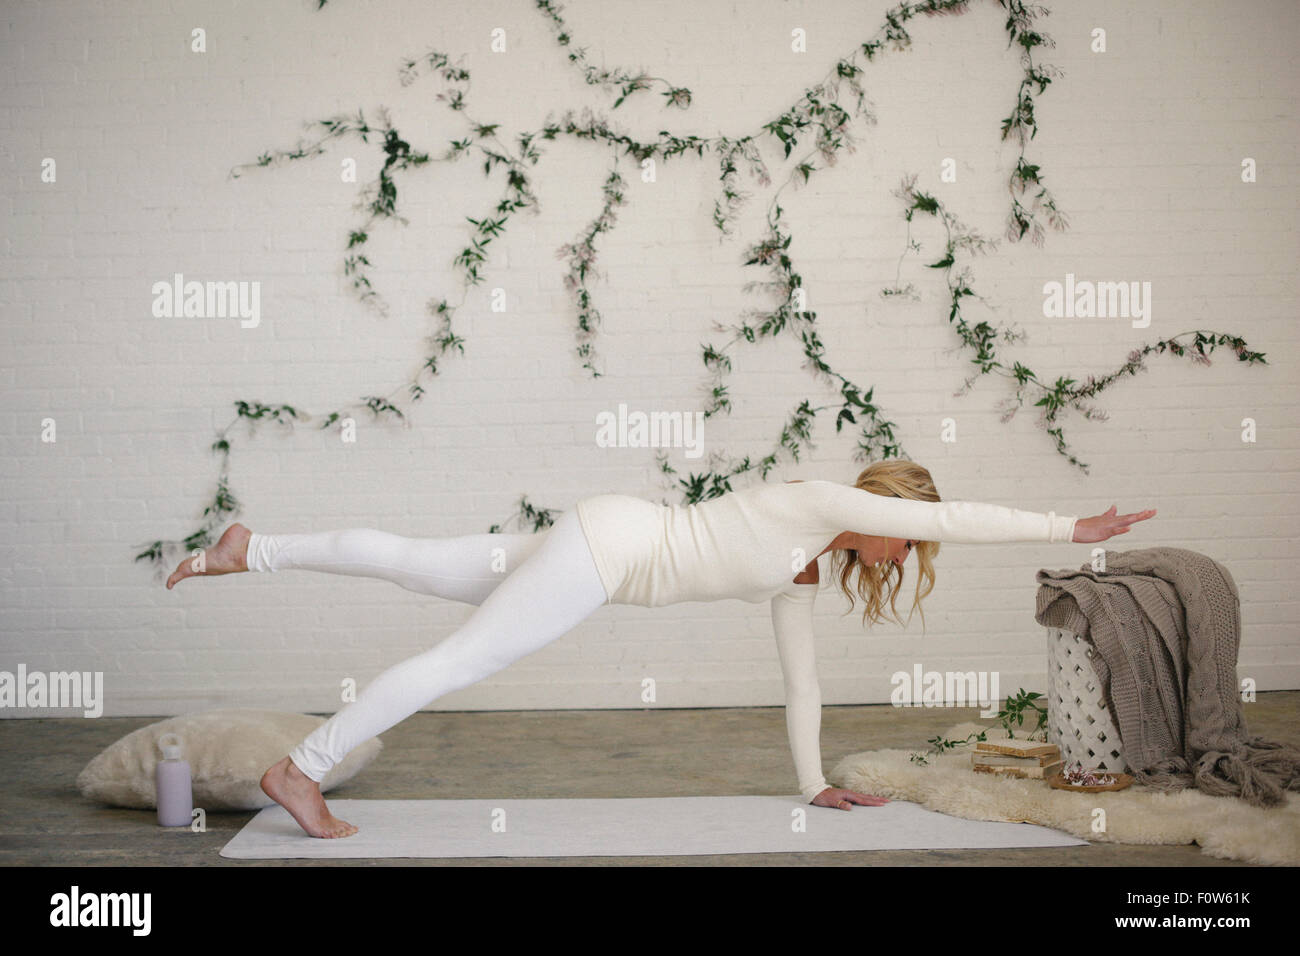 A blonde woman on a white mat in a room, her leg and arm outstretched. A creeper plant on the wall behind her. - Stock Image